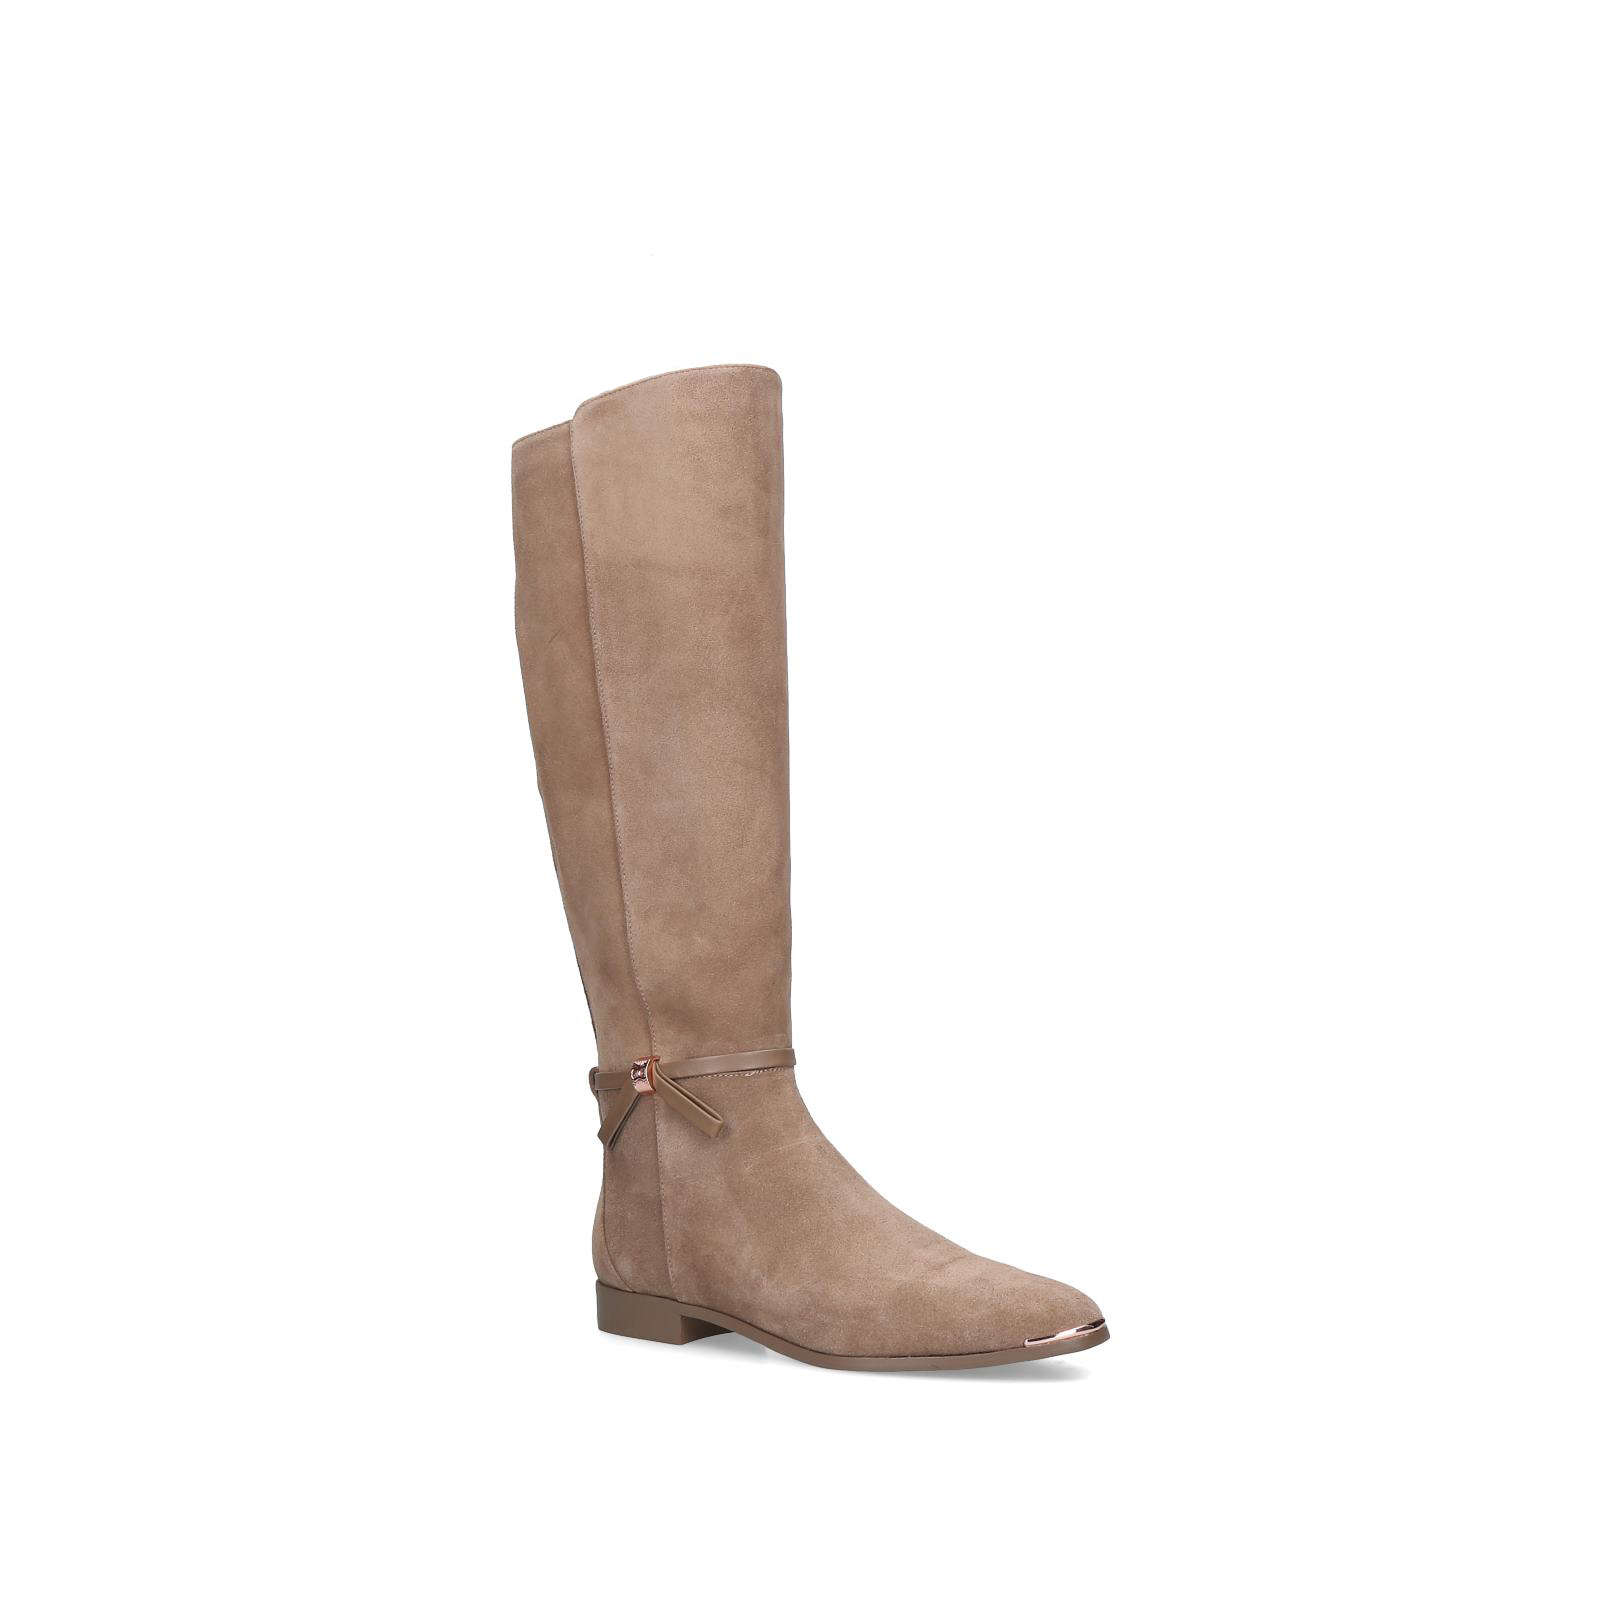 bf286216a6d86 LYKLA Lykla Ted Baker Ankle Boots Low Heel 0-21Mm Taupe by TED BAKER